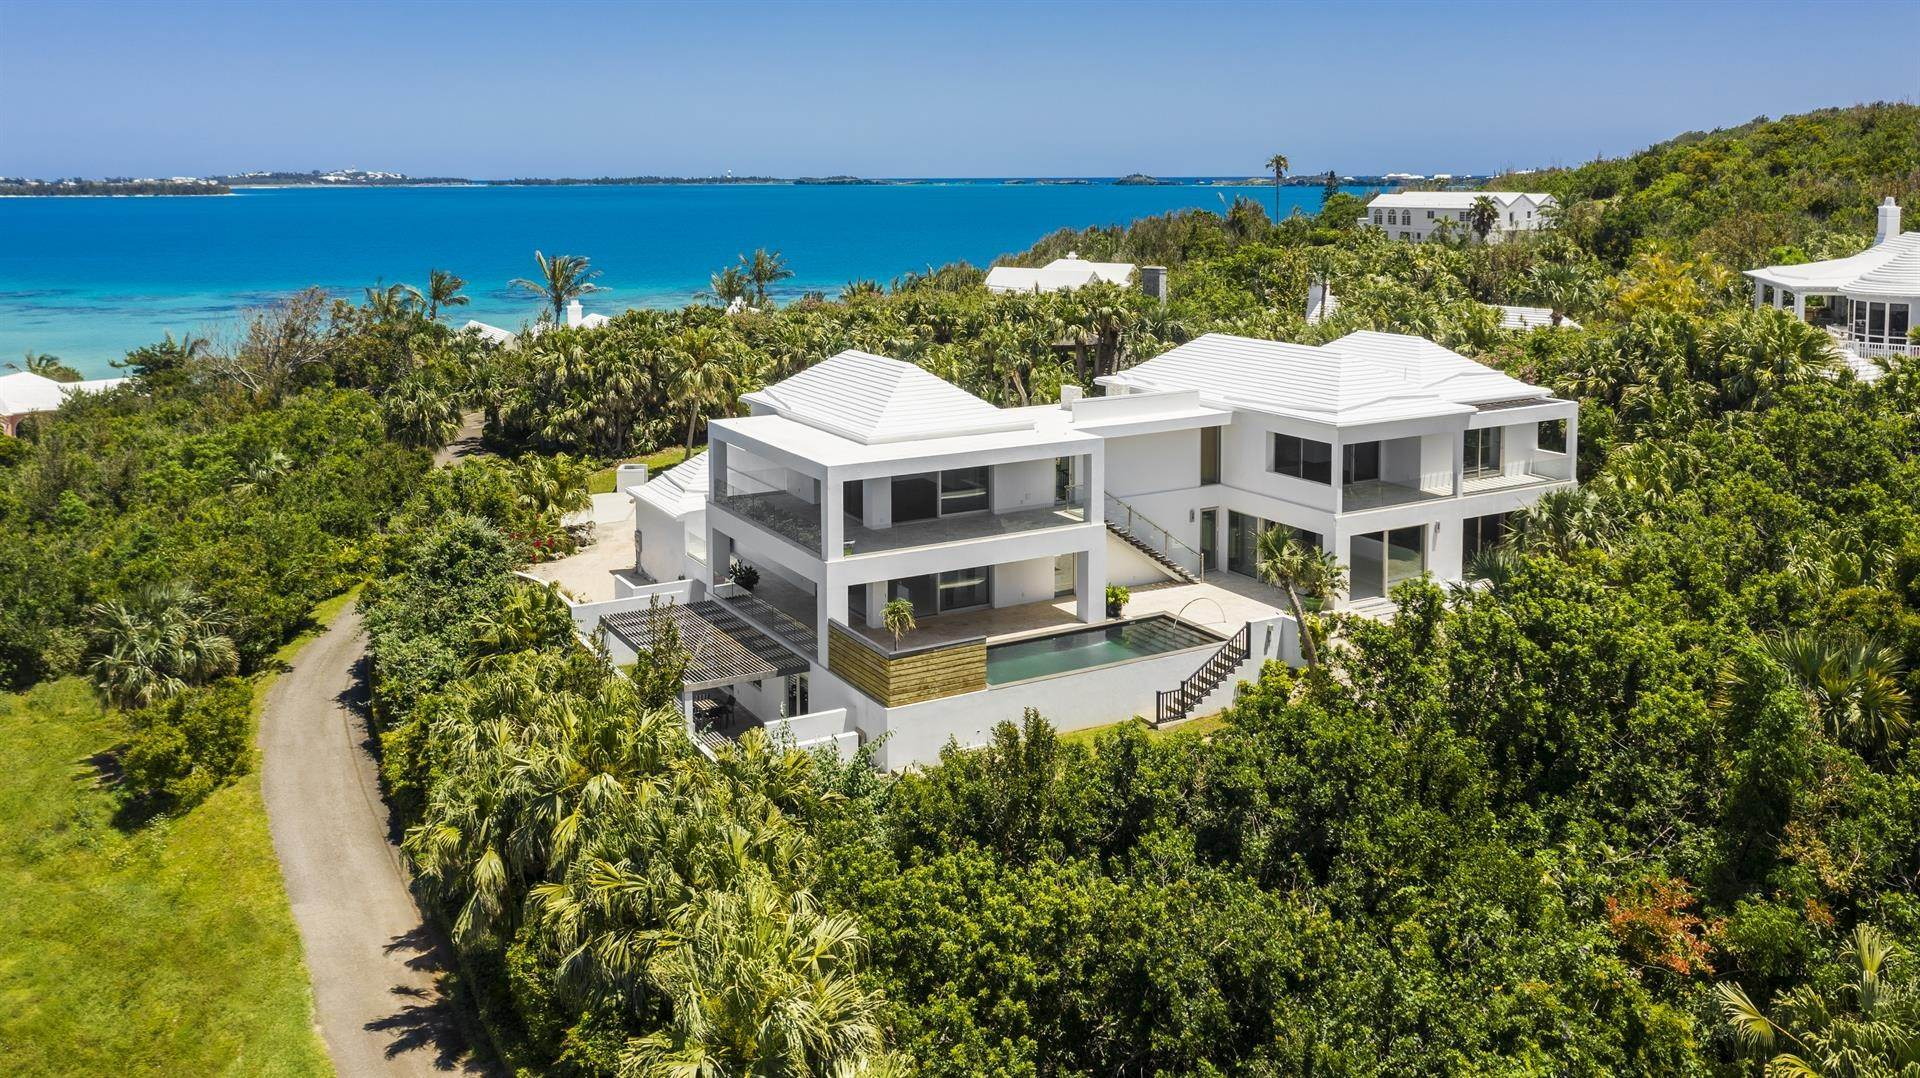 Single Family Homes for Sale at Georgetown - Bermuda's Modern House Georgetown - Bermuda's Modern House, 50A Harrington Sound Road,Bermuda – Sinclair Realty